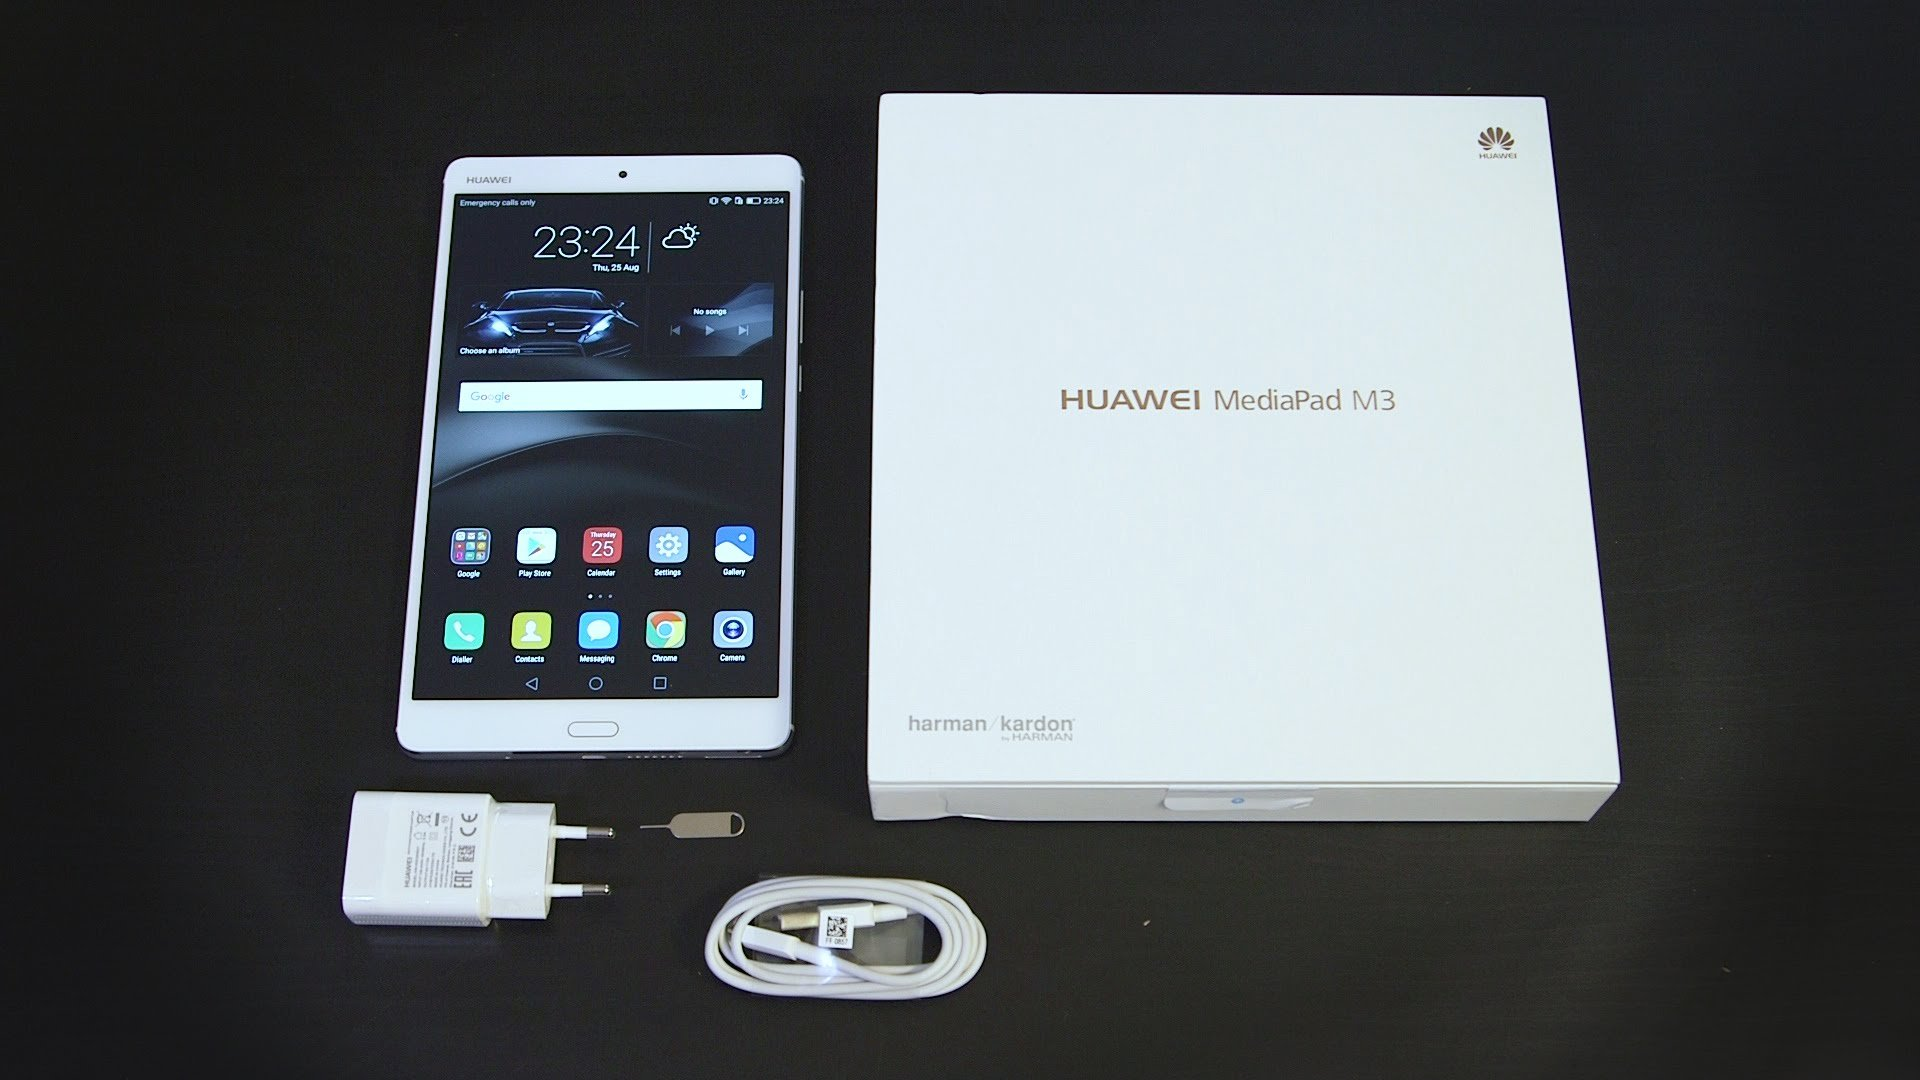 Il kit completo del tablet Huawei Mediapad M3